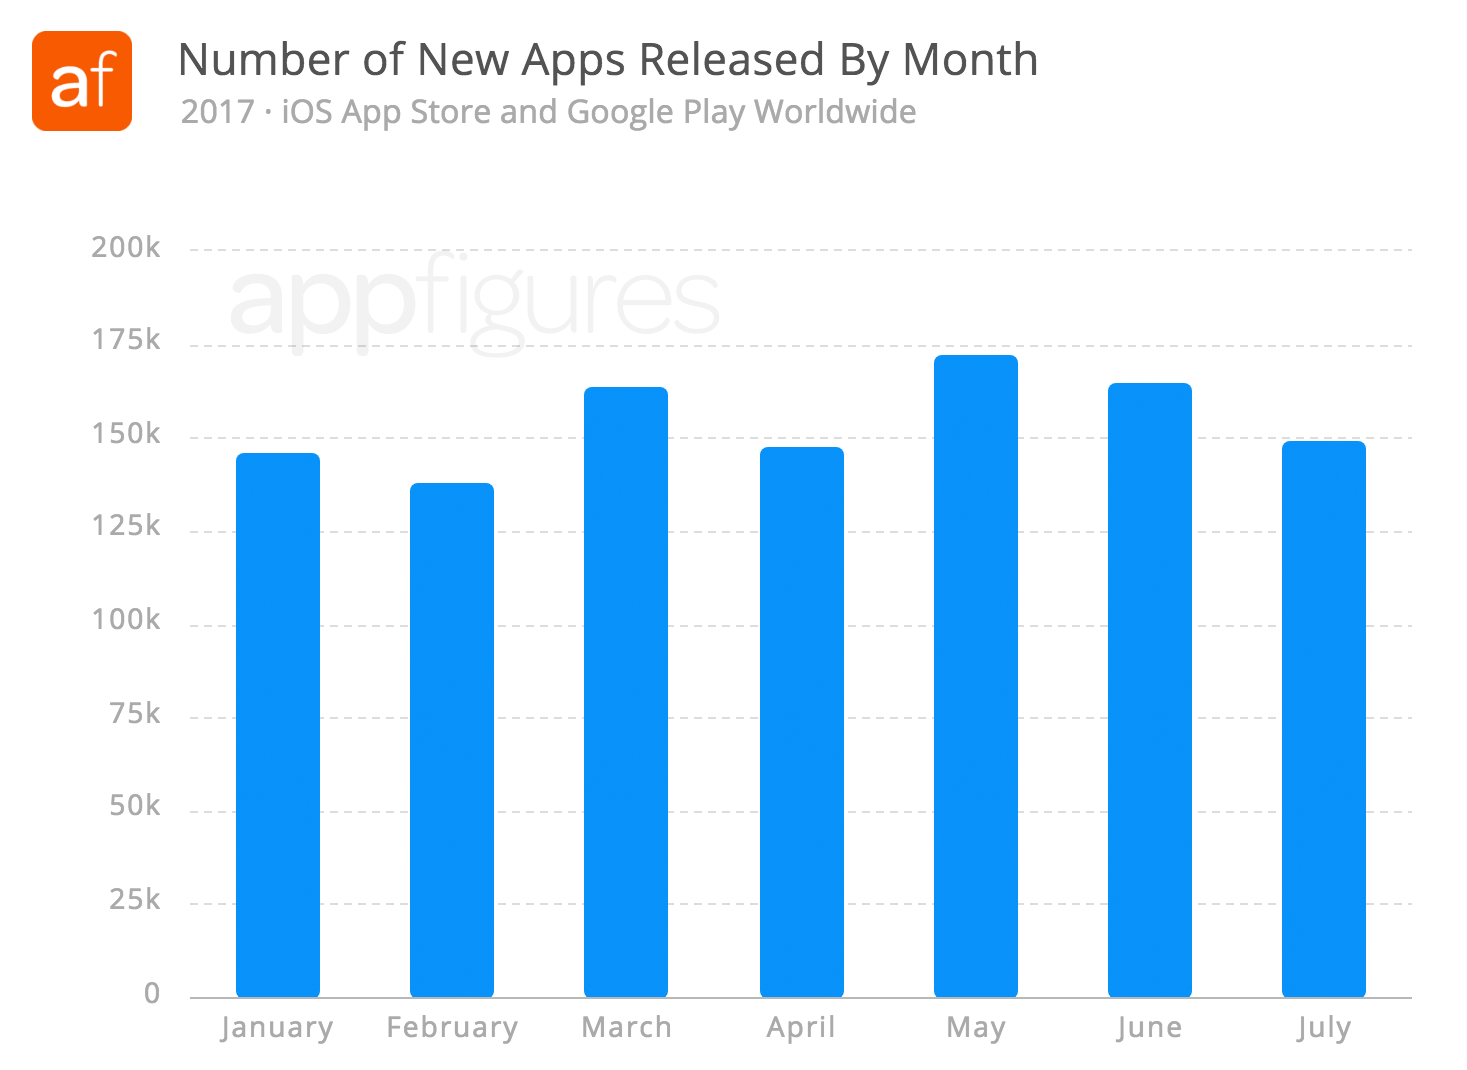 402K iOS apps and 690K Android apps were released so far this year.